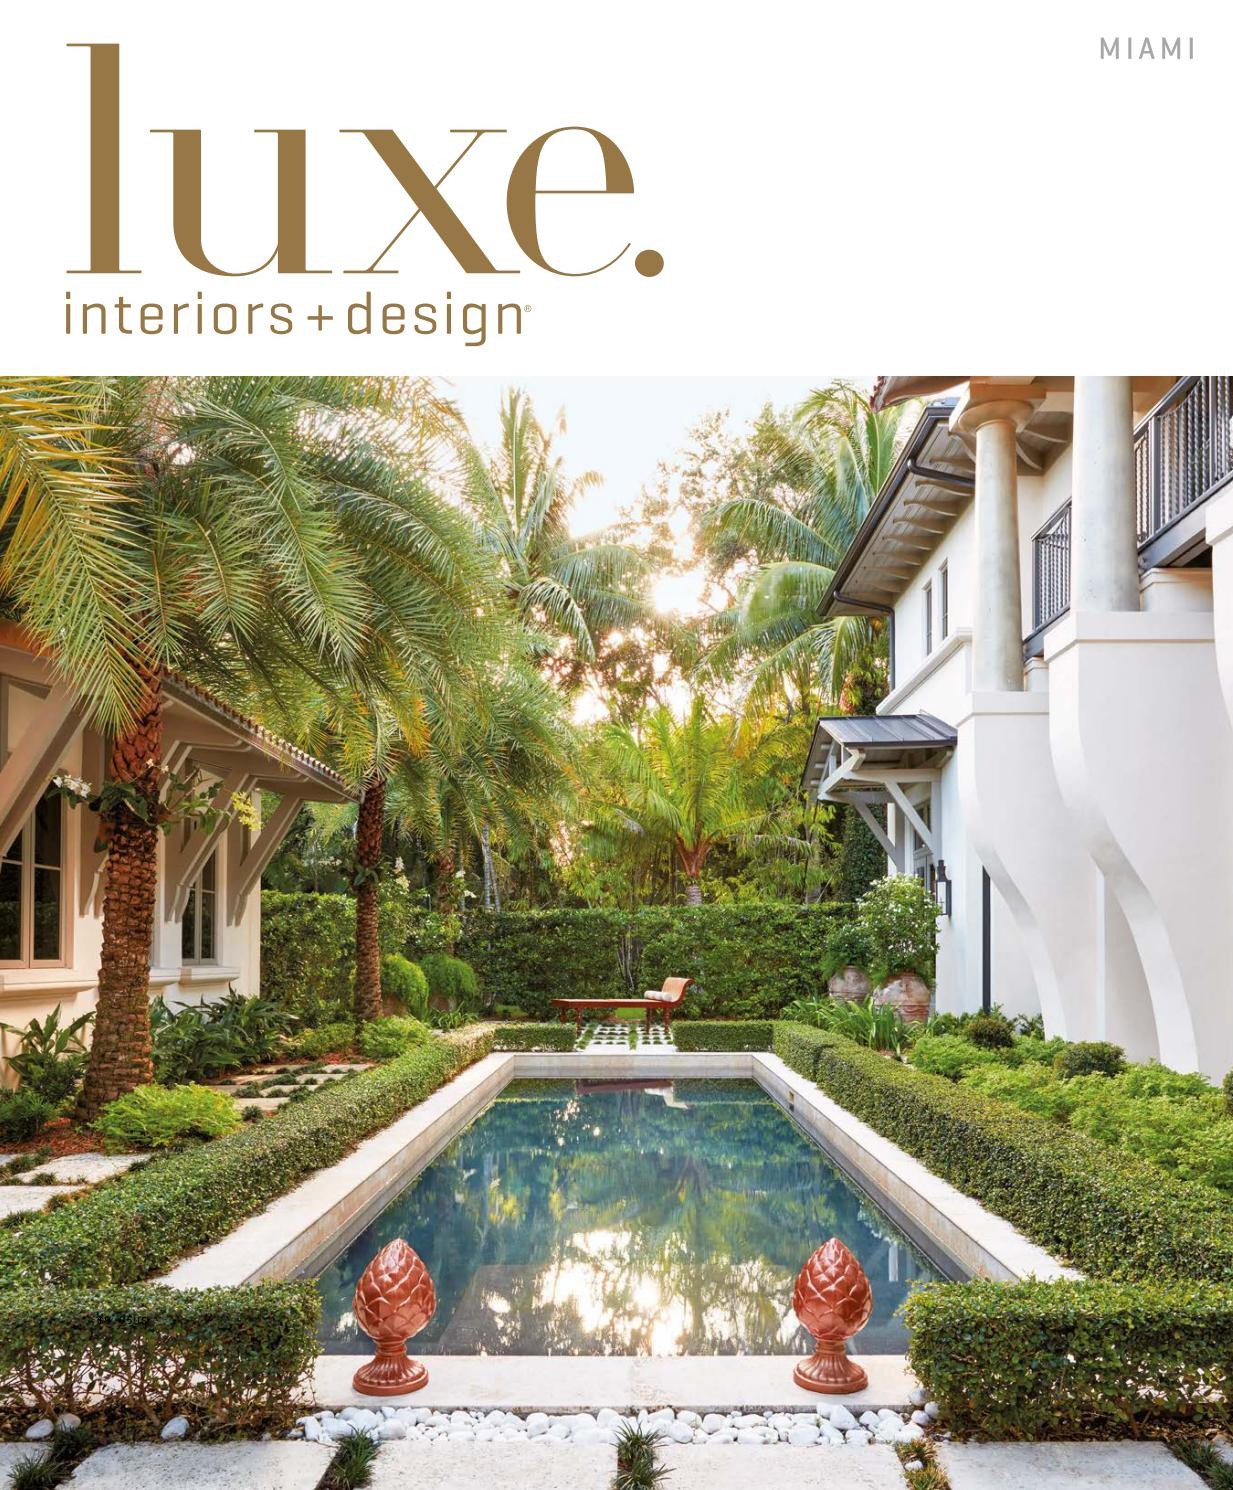 25 Lovable D Lux Hardwood Floors Portland 2021 free download d lux hardwood floors portland of luxe magazine november 2016 miami by sandowa issuu regarding page 1